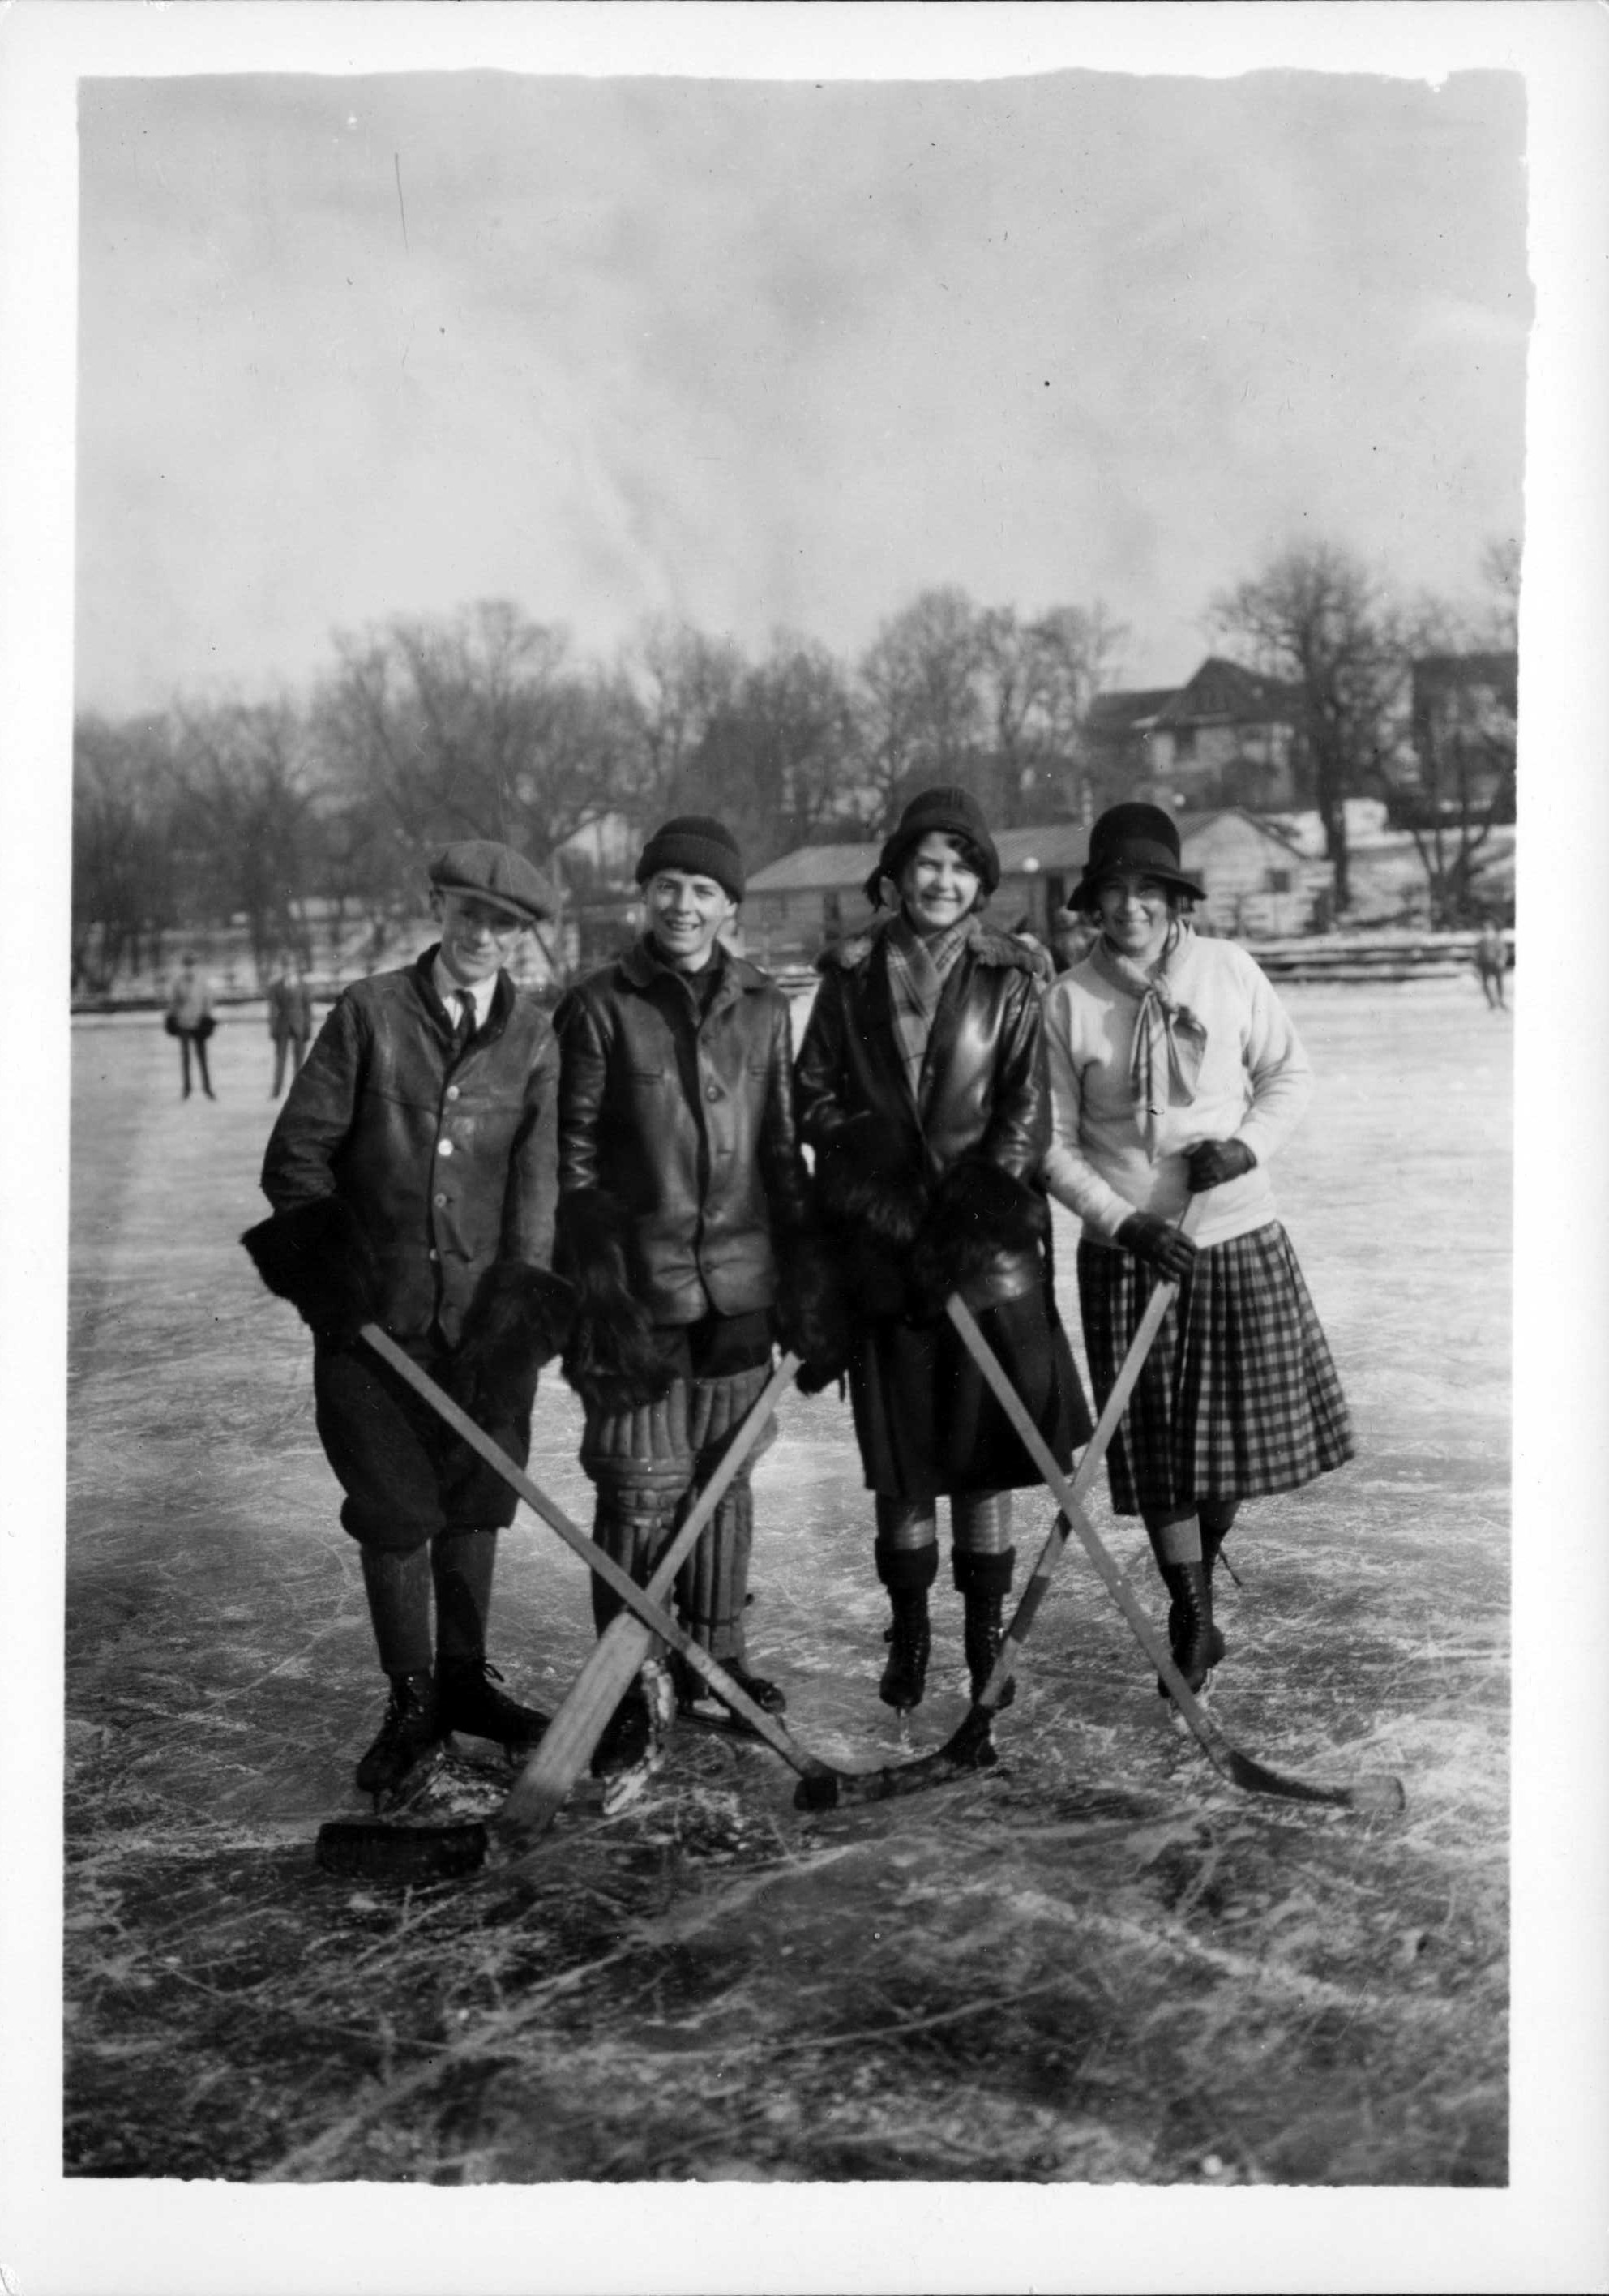 lake of the isles hockey skaters, january 10, 1926, side 1